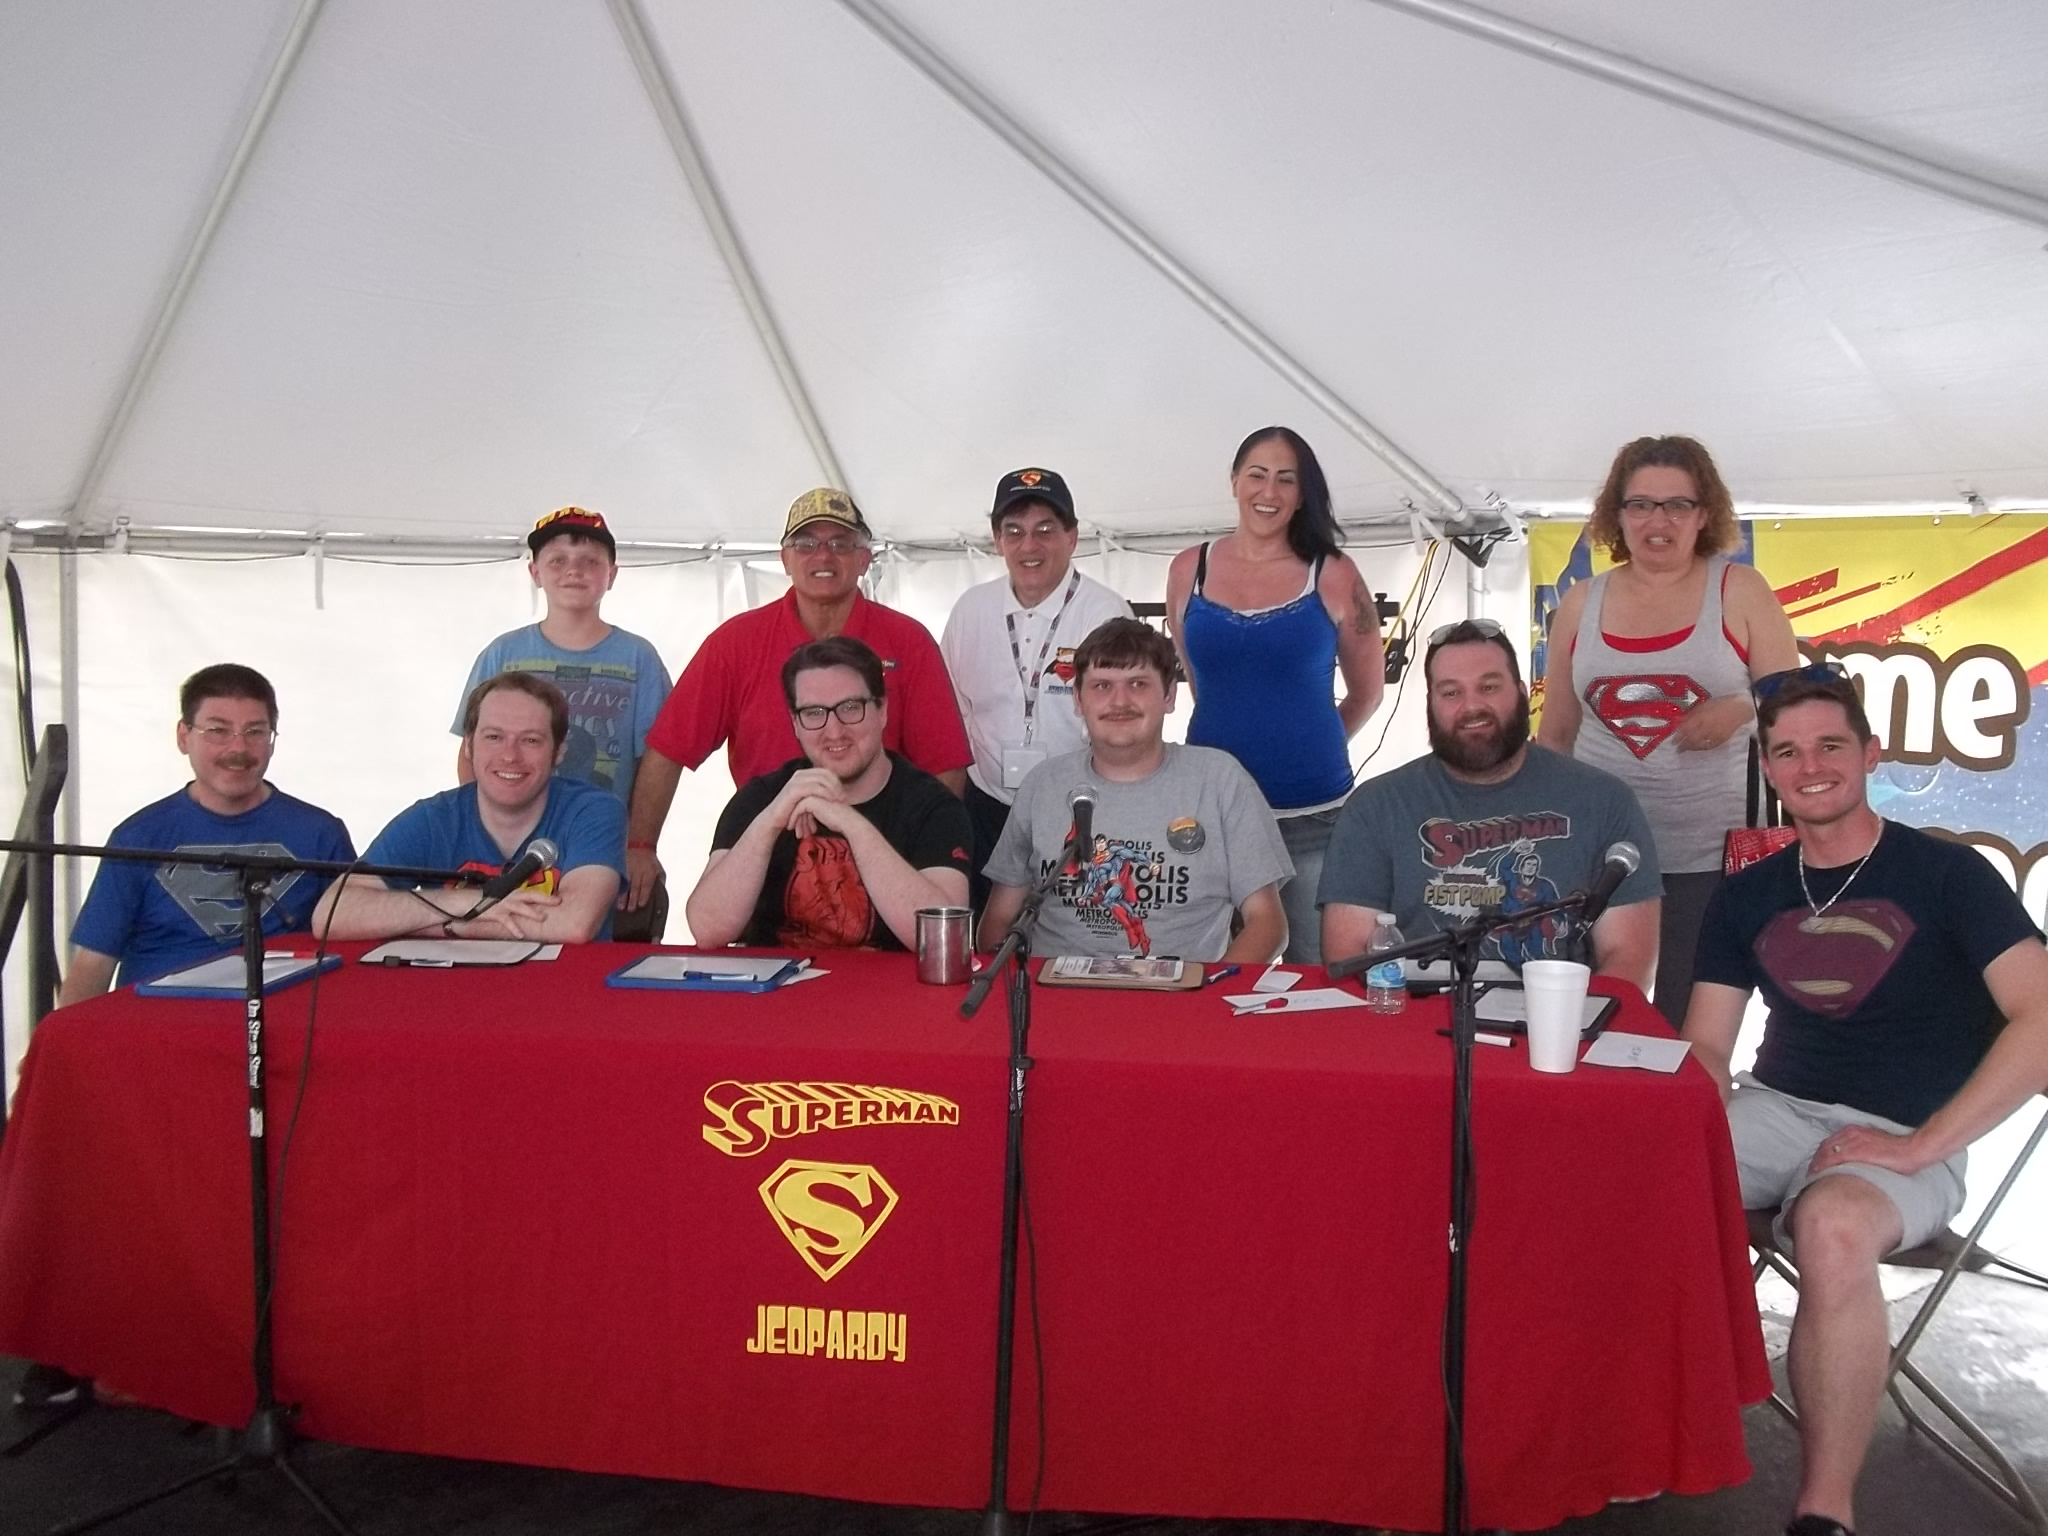 2016 Superman Jeopardy contestants and staff